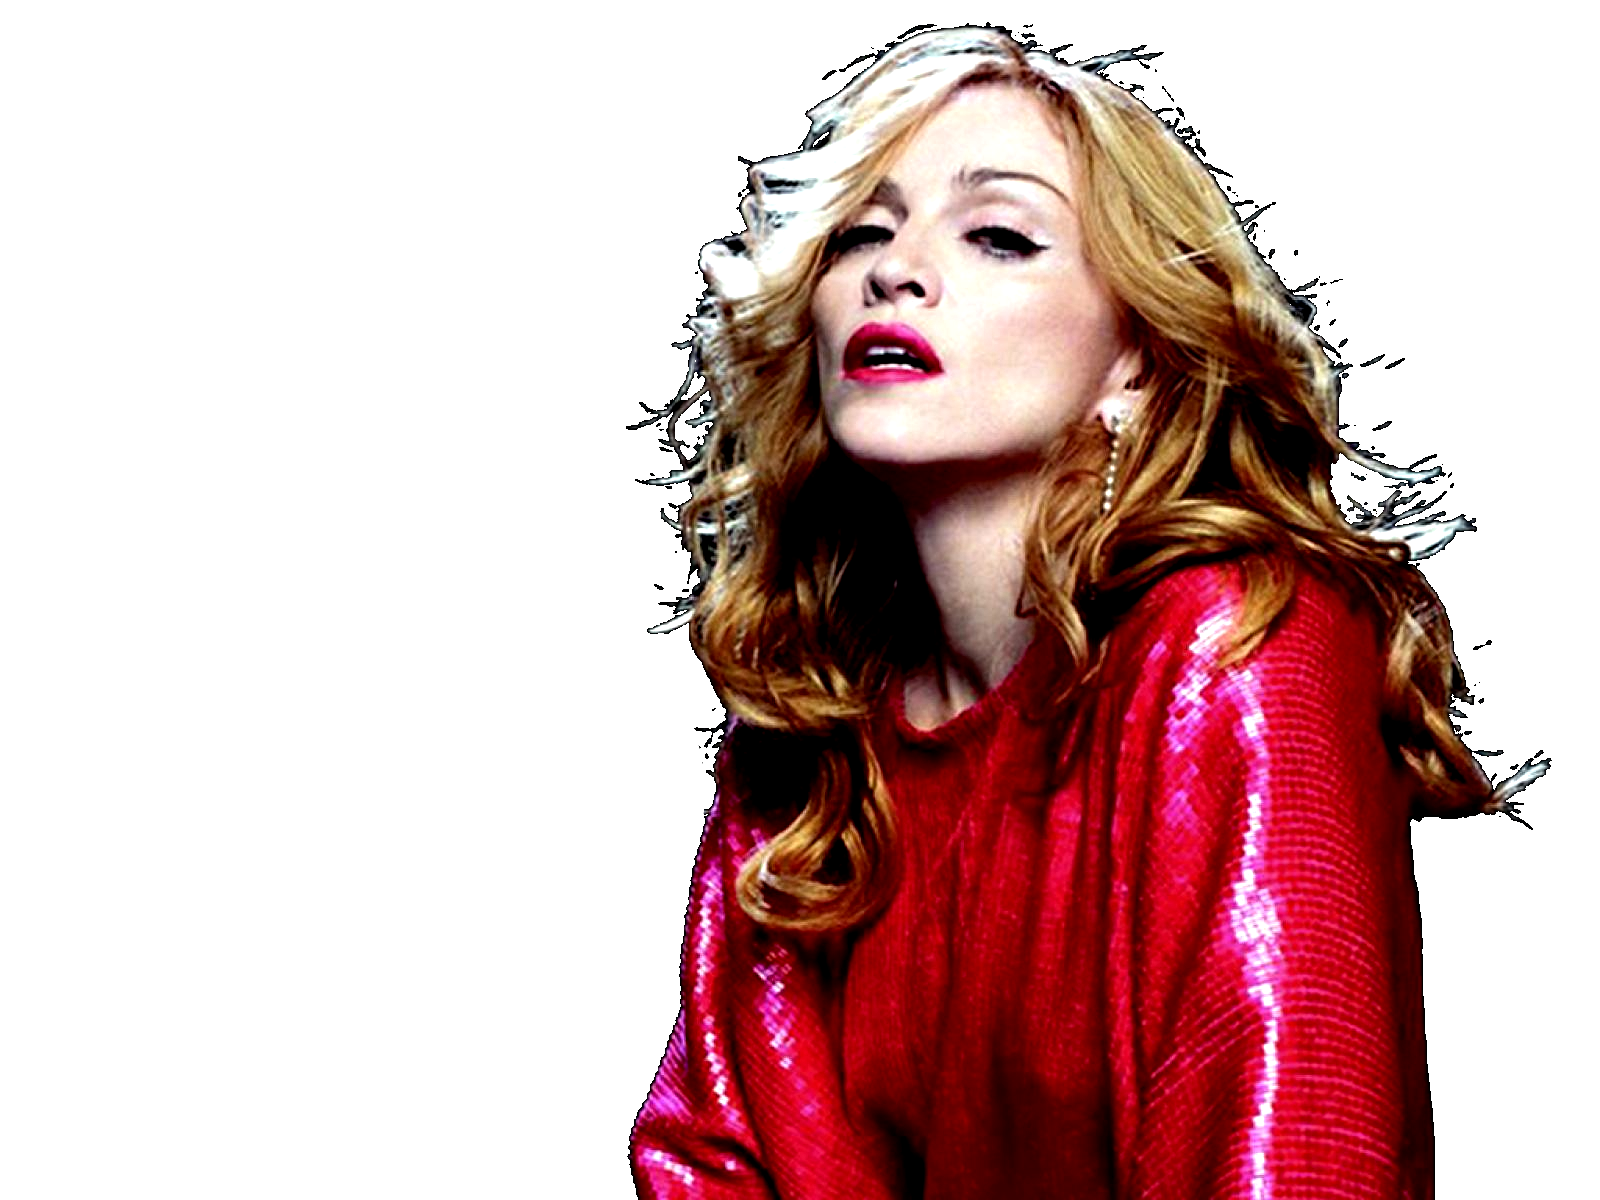 Madonna FanMade Covers: Confessions On A Dancefloor.